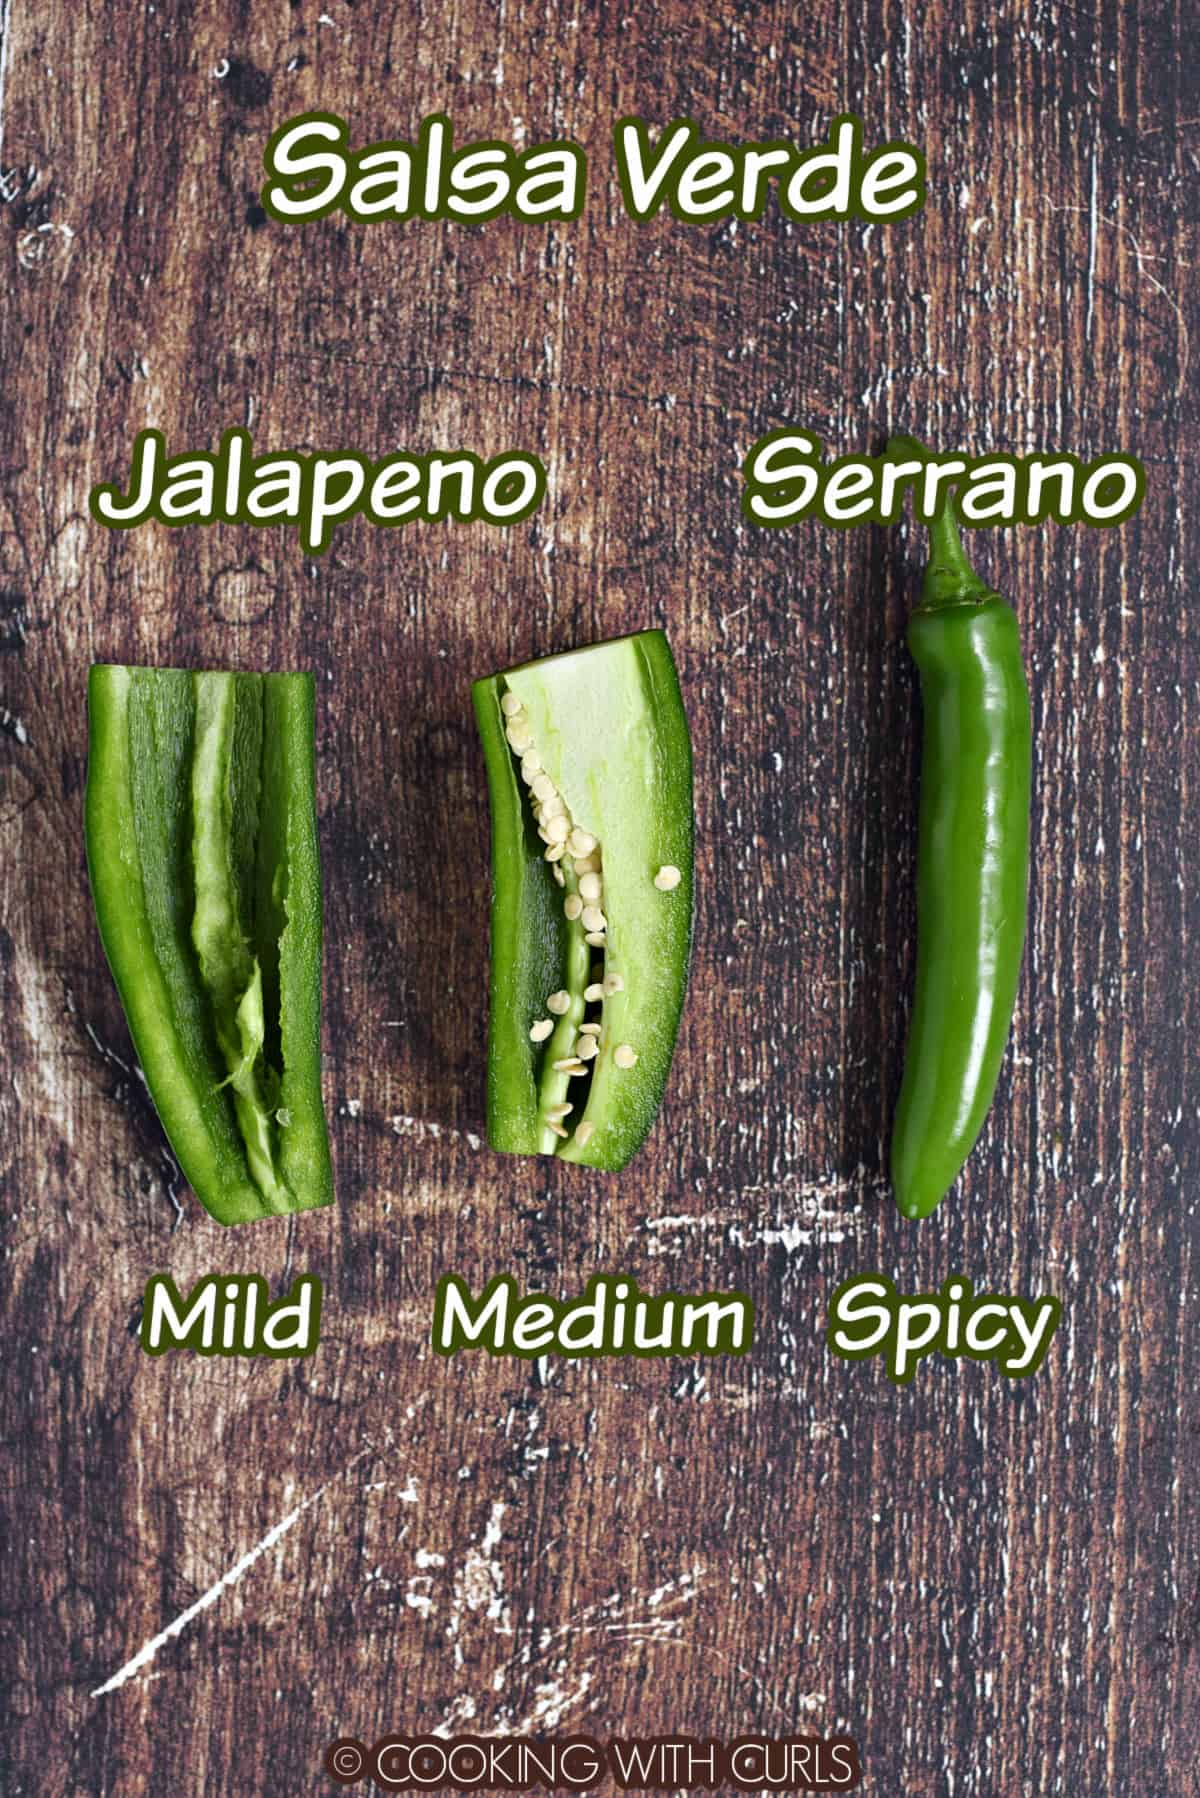 Salsa Verde heat - mild,  medium, spicy shown with jalapeno and serrano peppers.